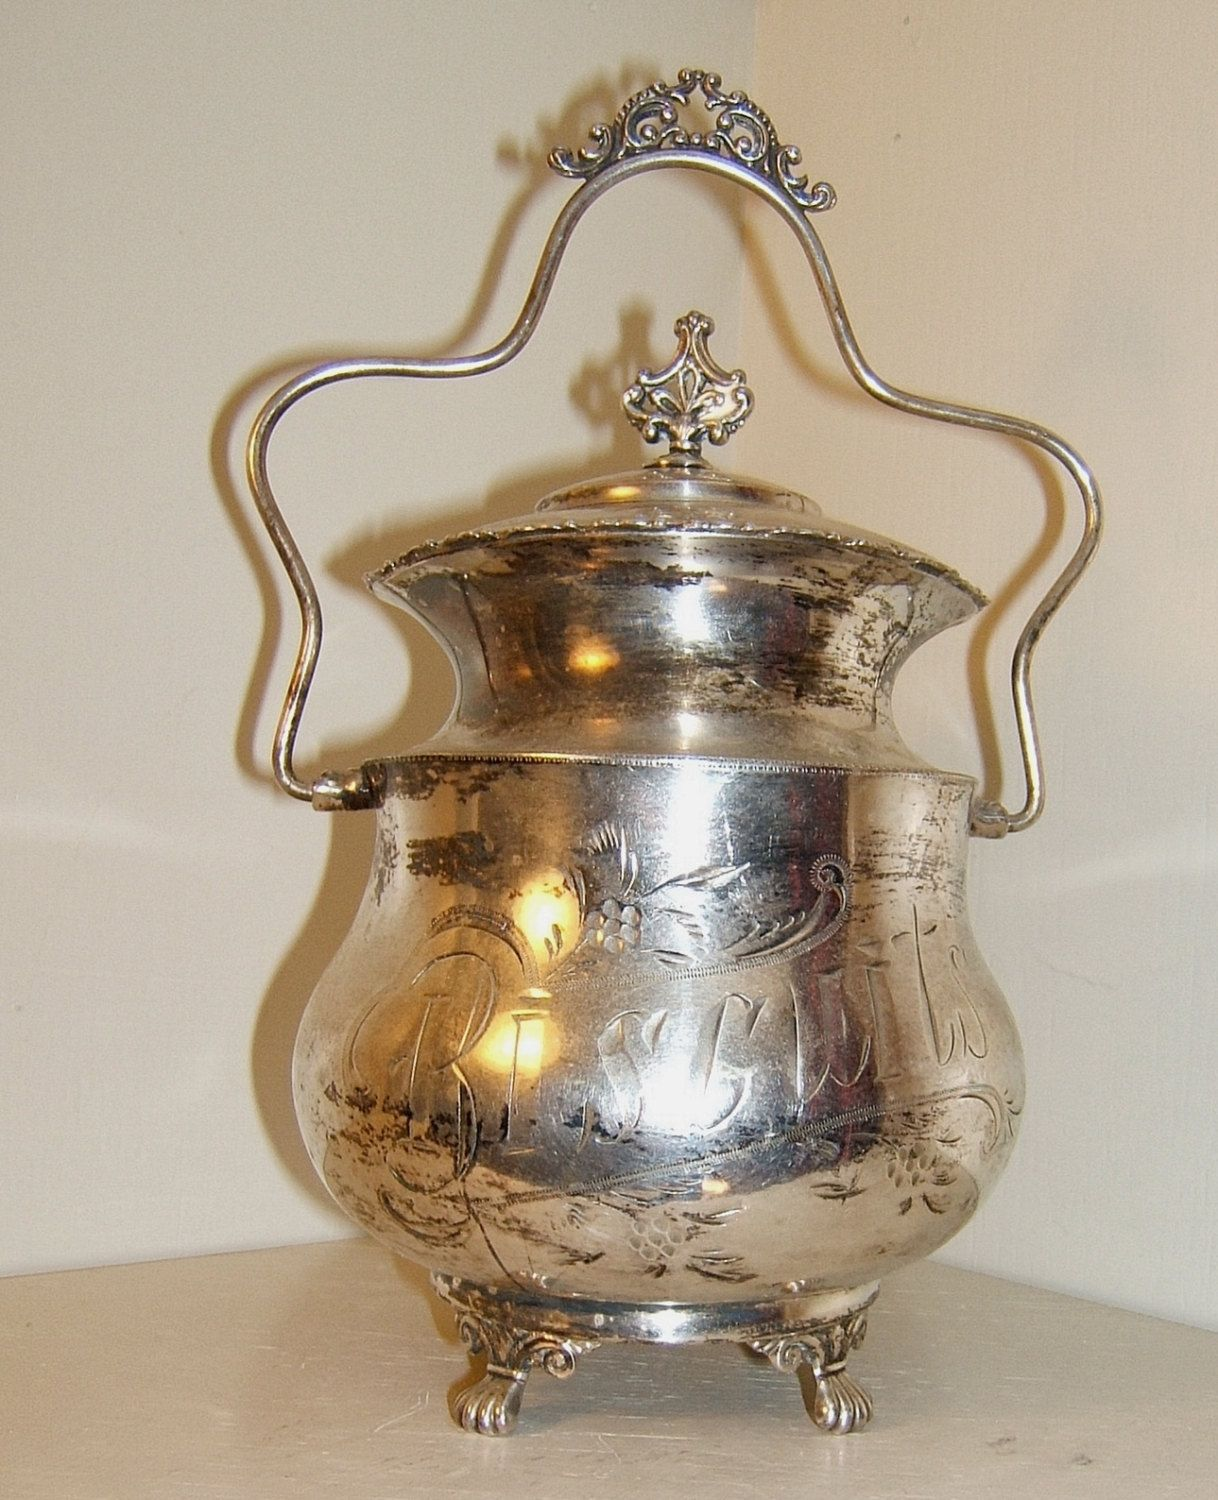 Antique Biscuit Jar Engraved Silver Plate by NOVASCOTIATREASURES $125.00 & Antique Biscuit Jar Engraved Silver Plate by NOVASCOTIATREASURES ...